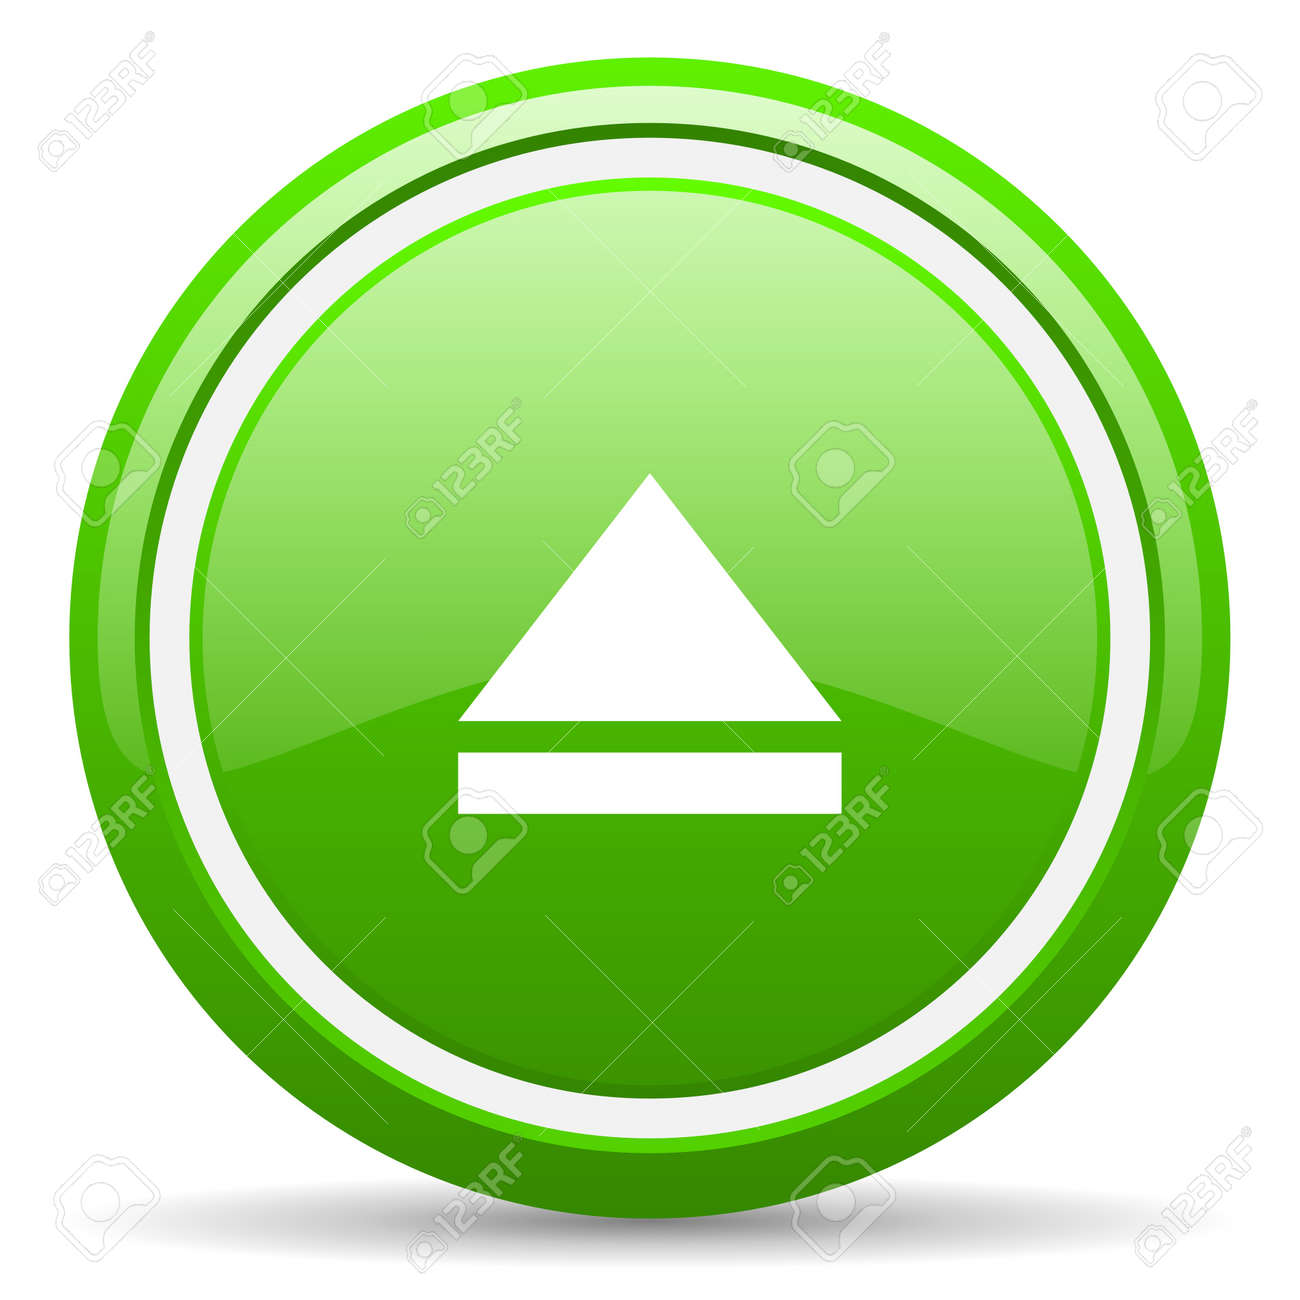 green glossy circle web icon on white background with shadow Stock Photo - 17138766